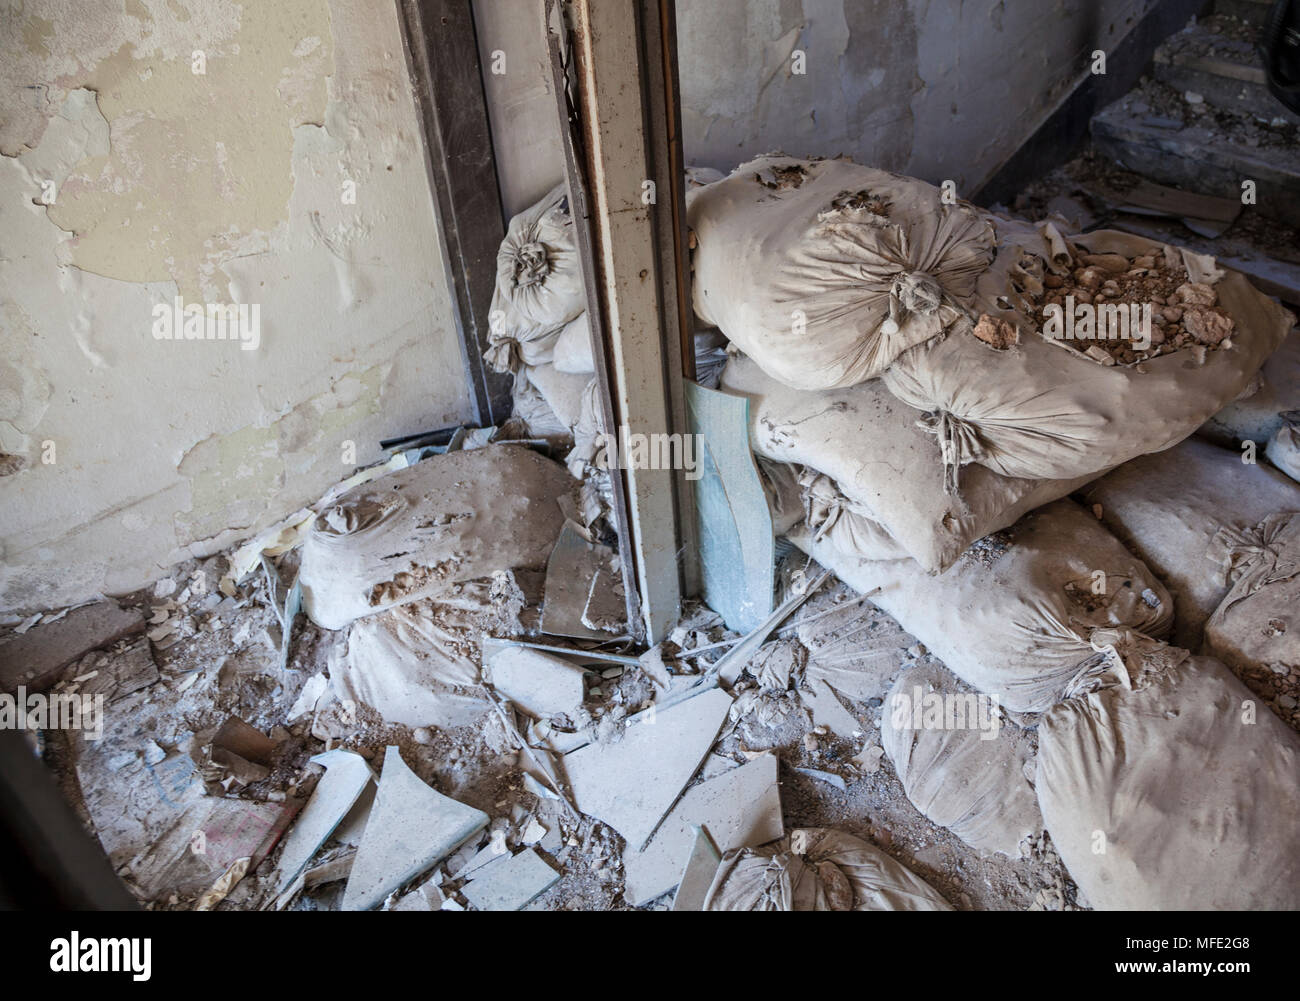 Sand bags and rubbled from inside a bombed out building from Bosnian War in Mostar, Bosnia and Herzegovina - Stock Image